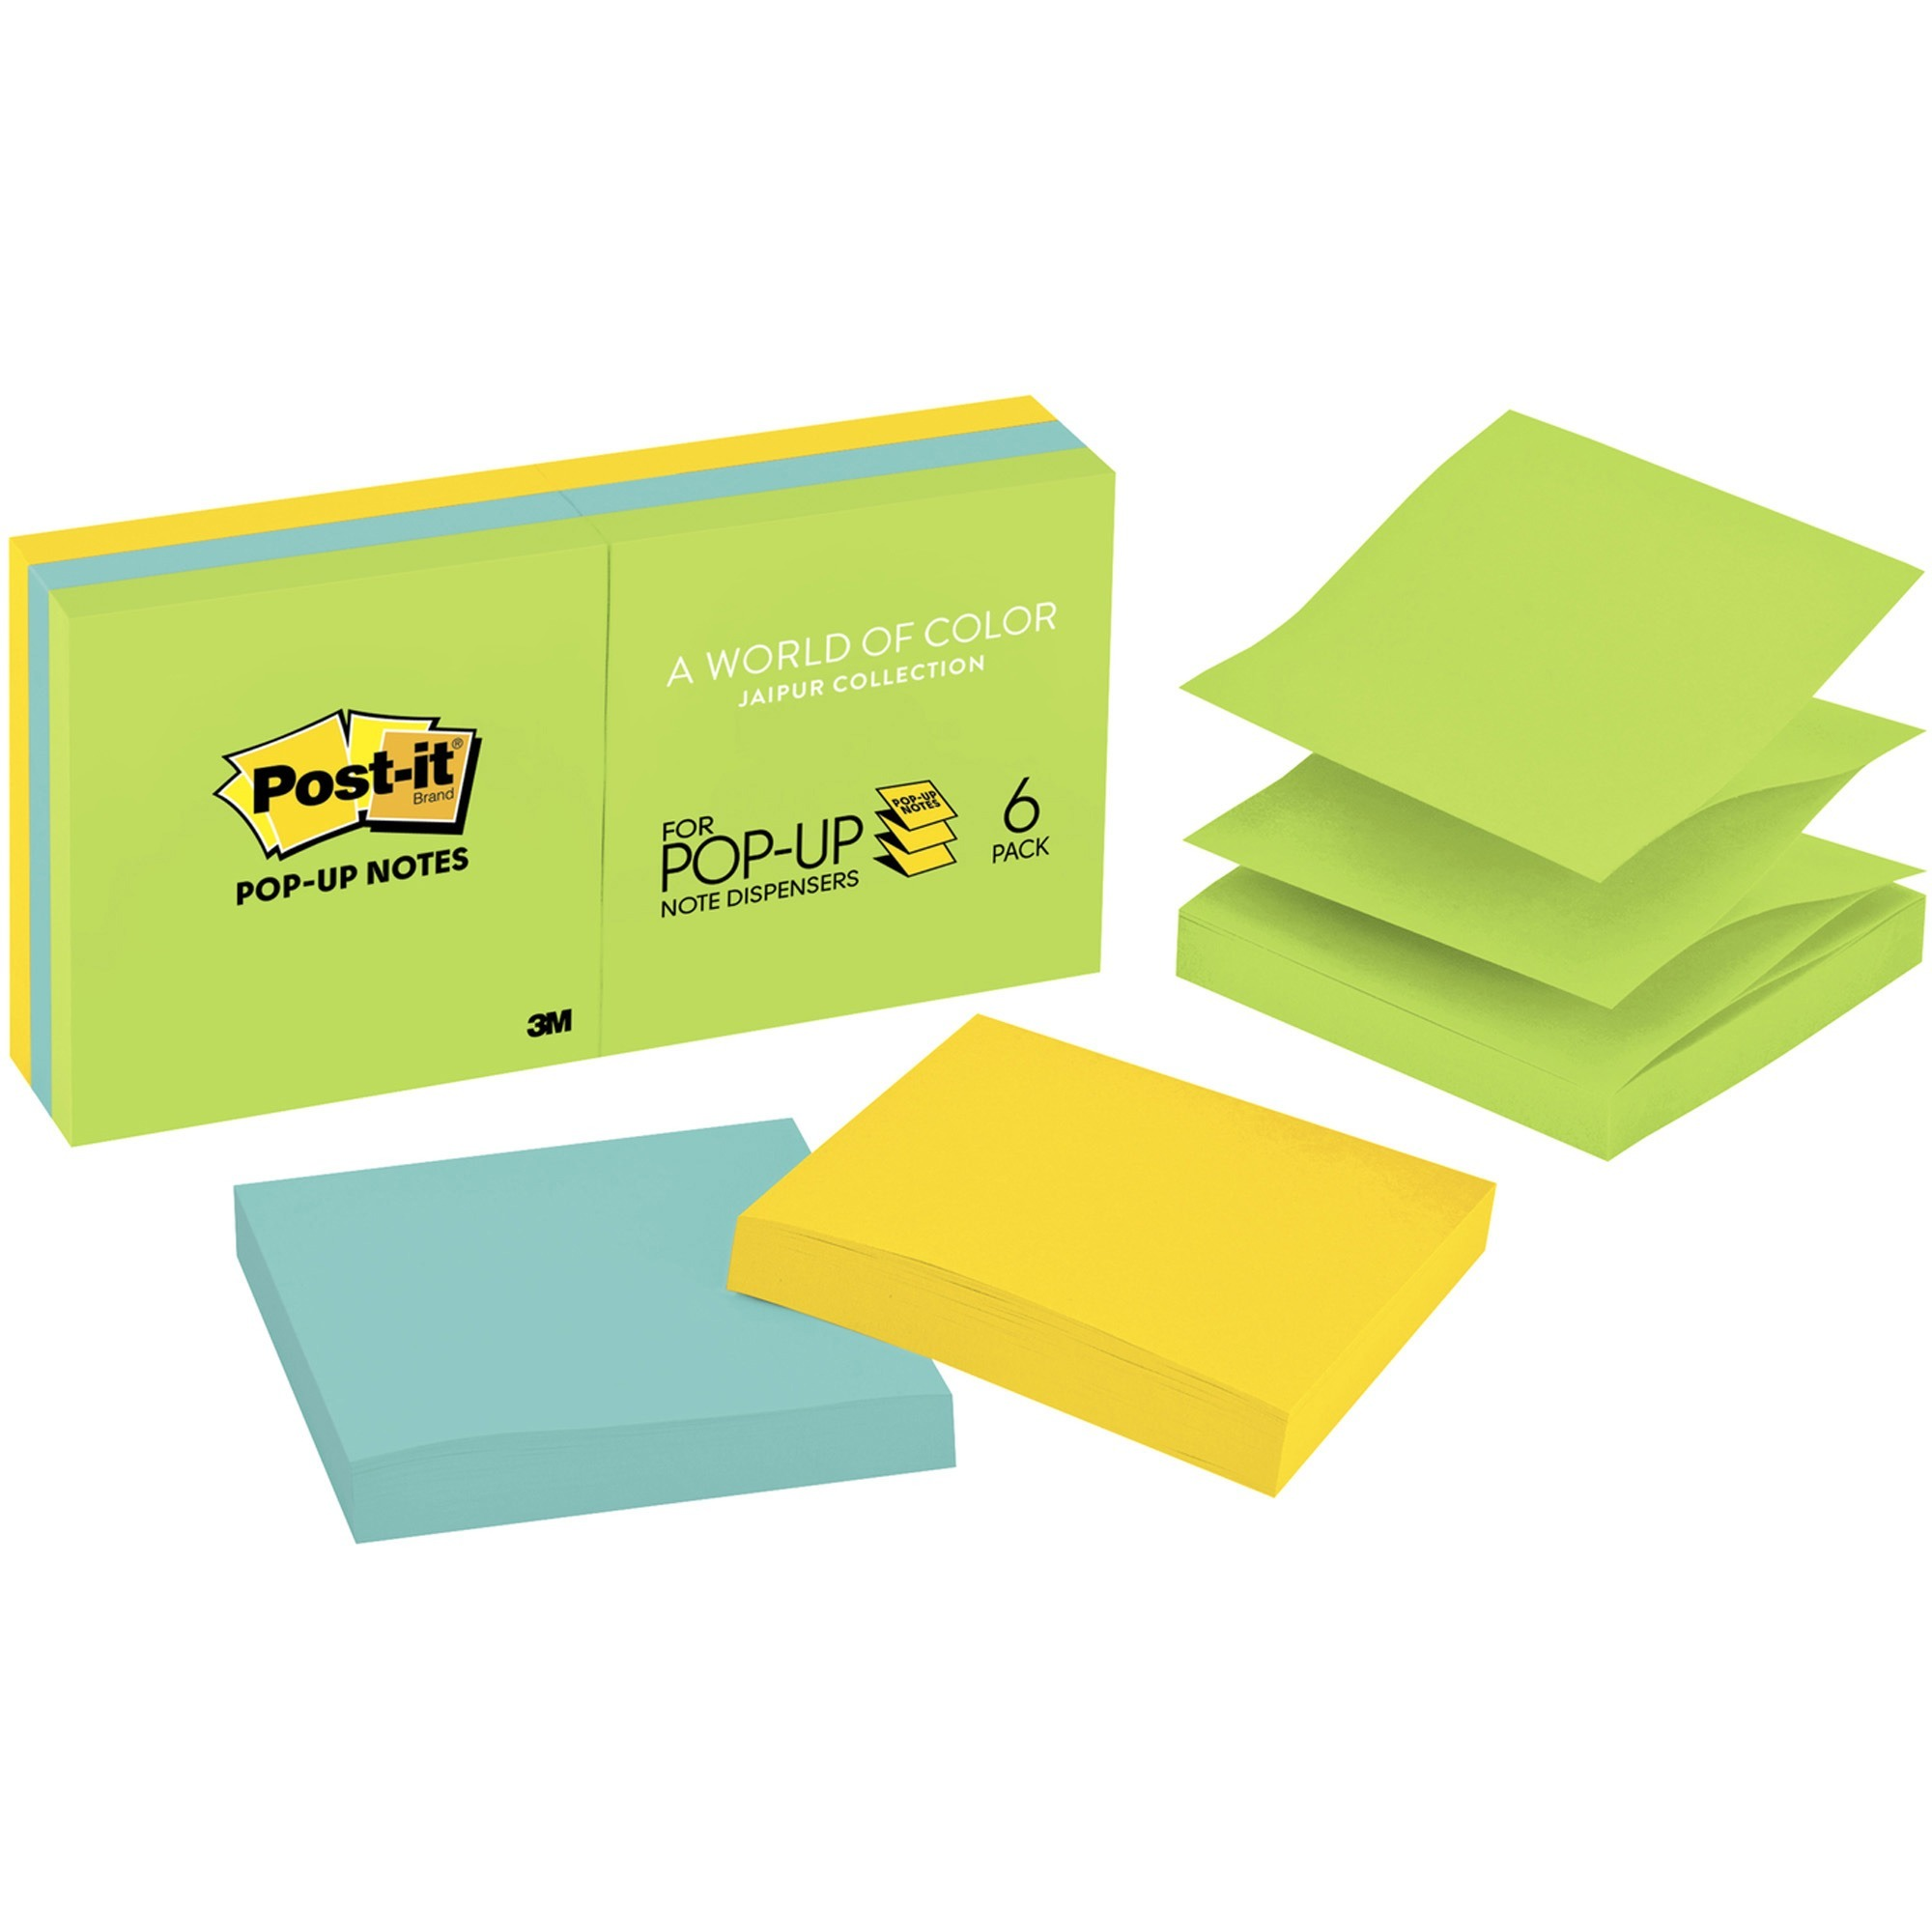 Post It Reg Mmmr330au Pop Up Jaipur Notes Refill 6 Pack Orted